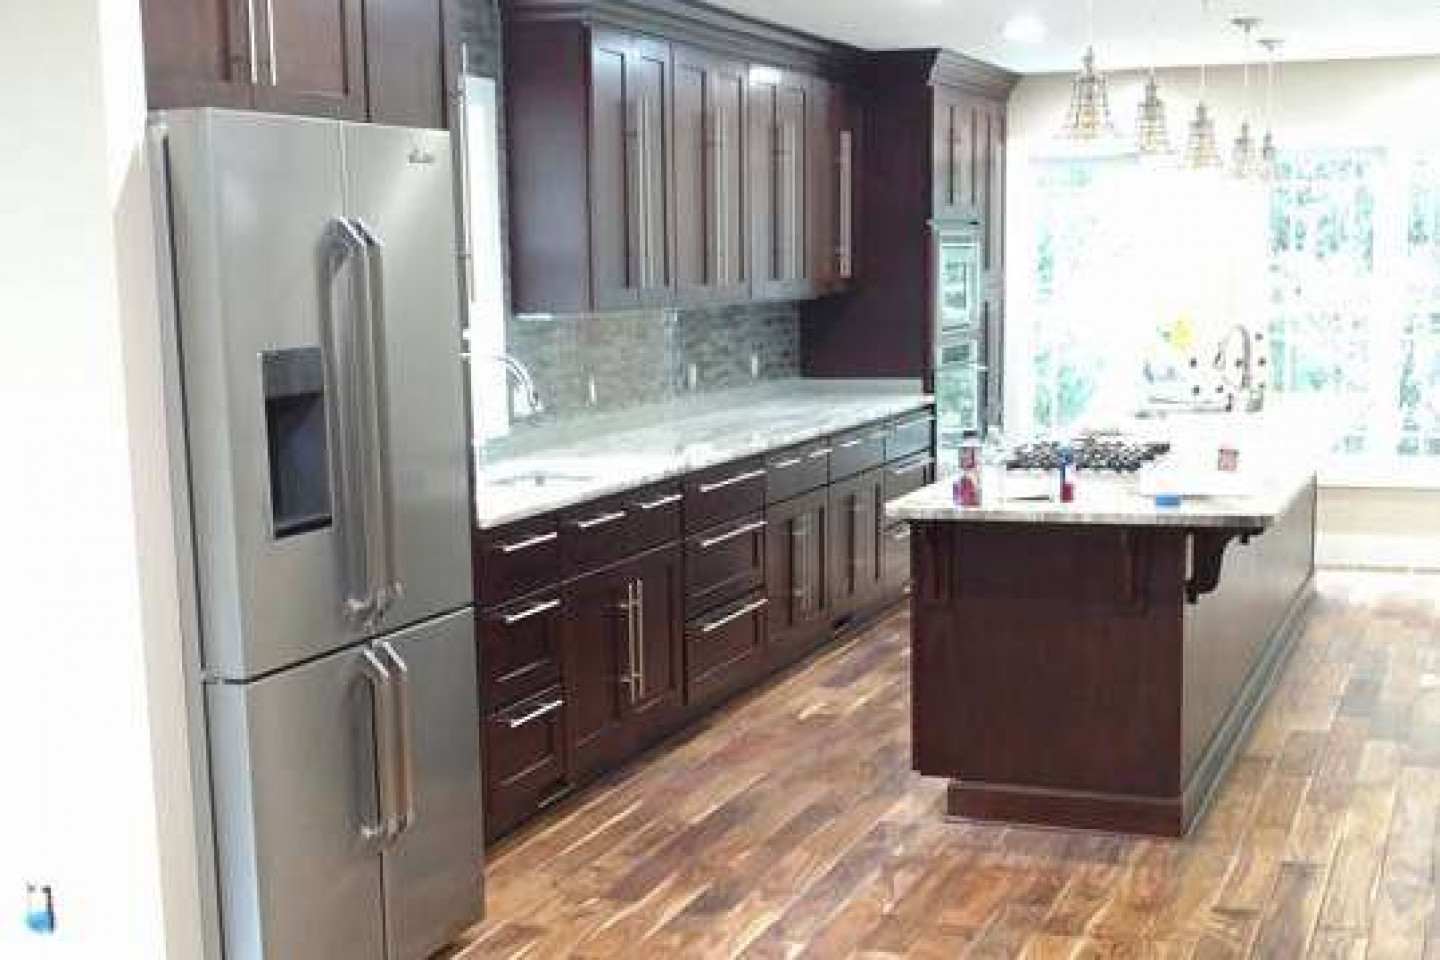 As a preferred local remodeling contractor, Joyner's Construction and Remodeling can upgrade your space